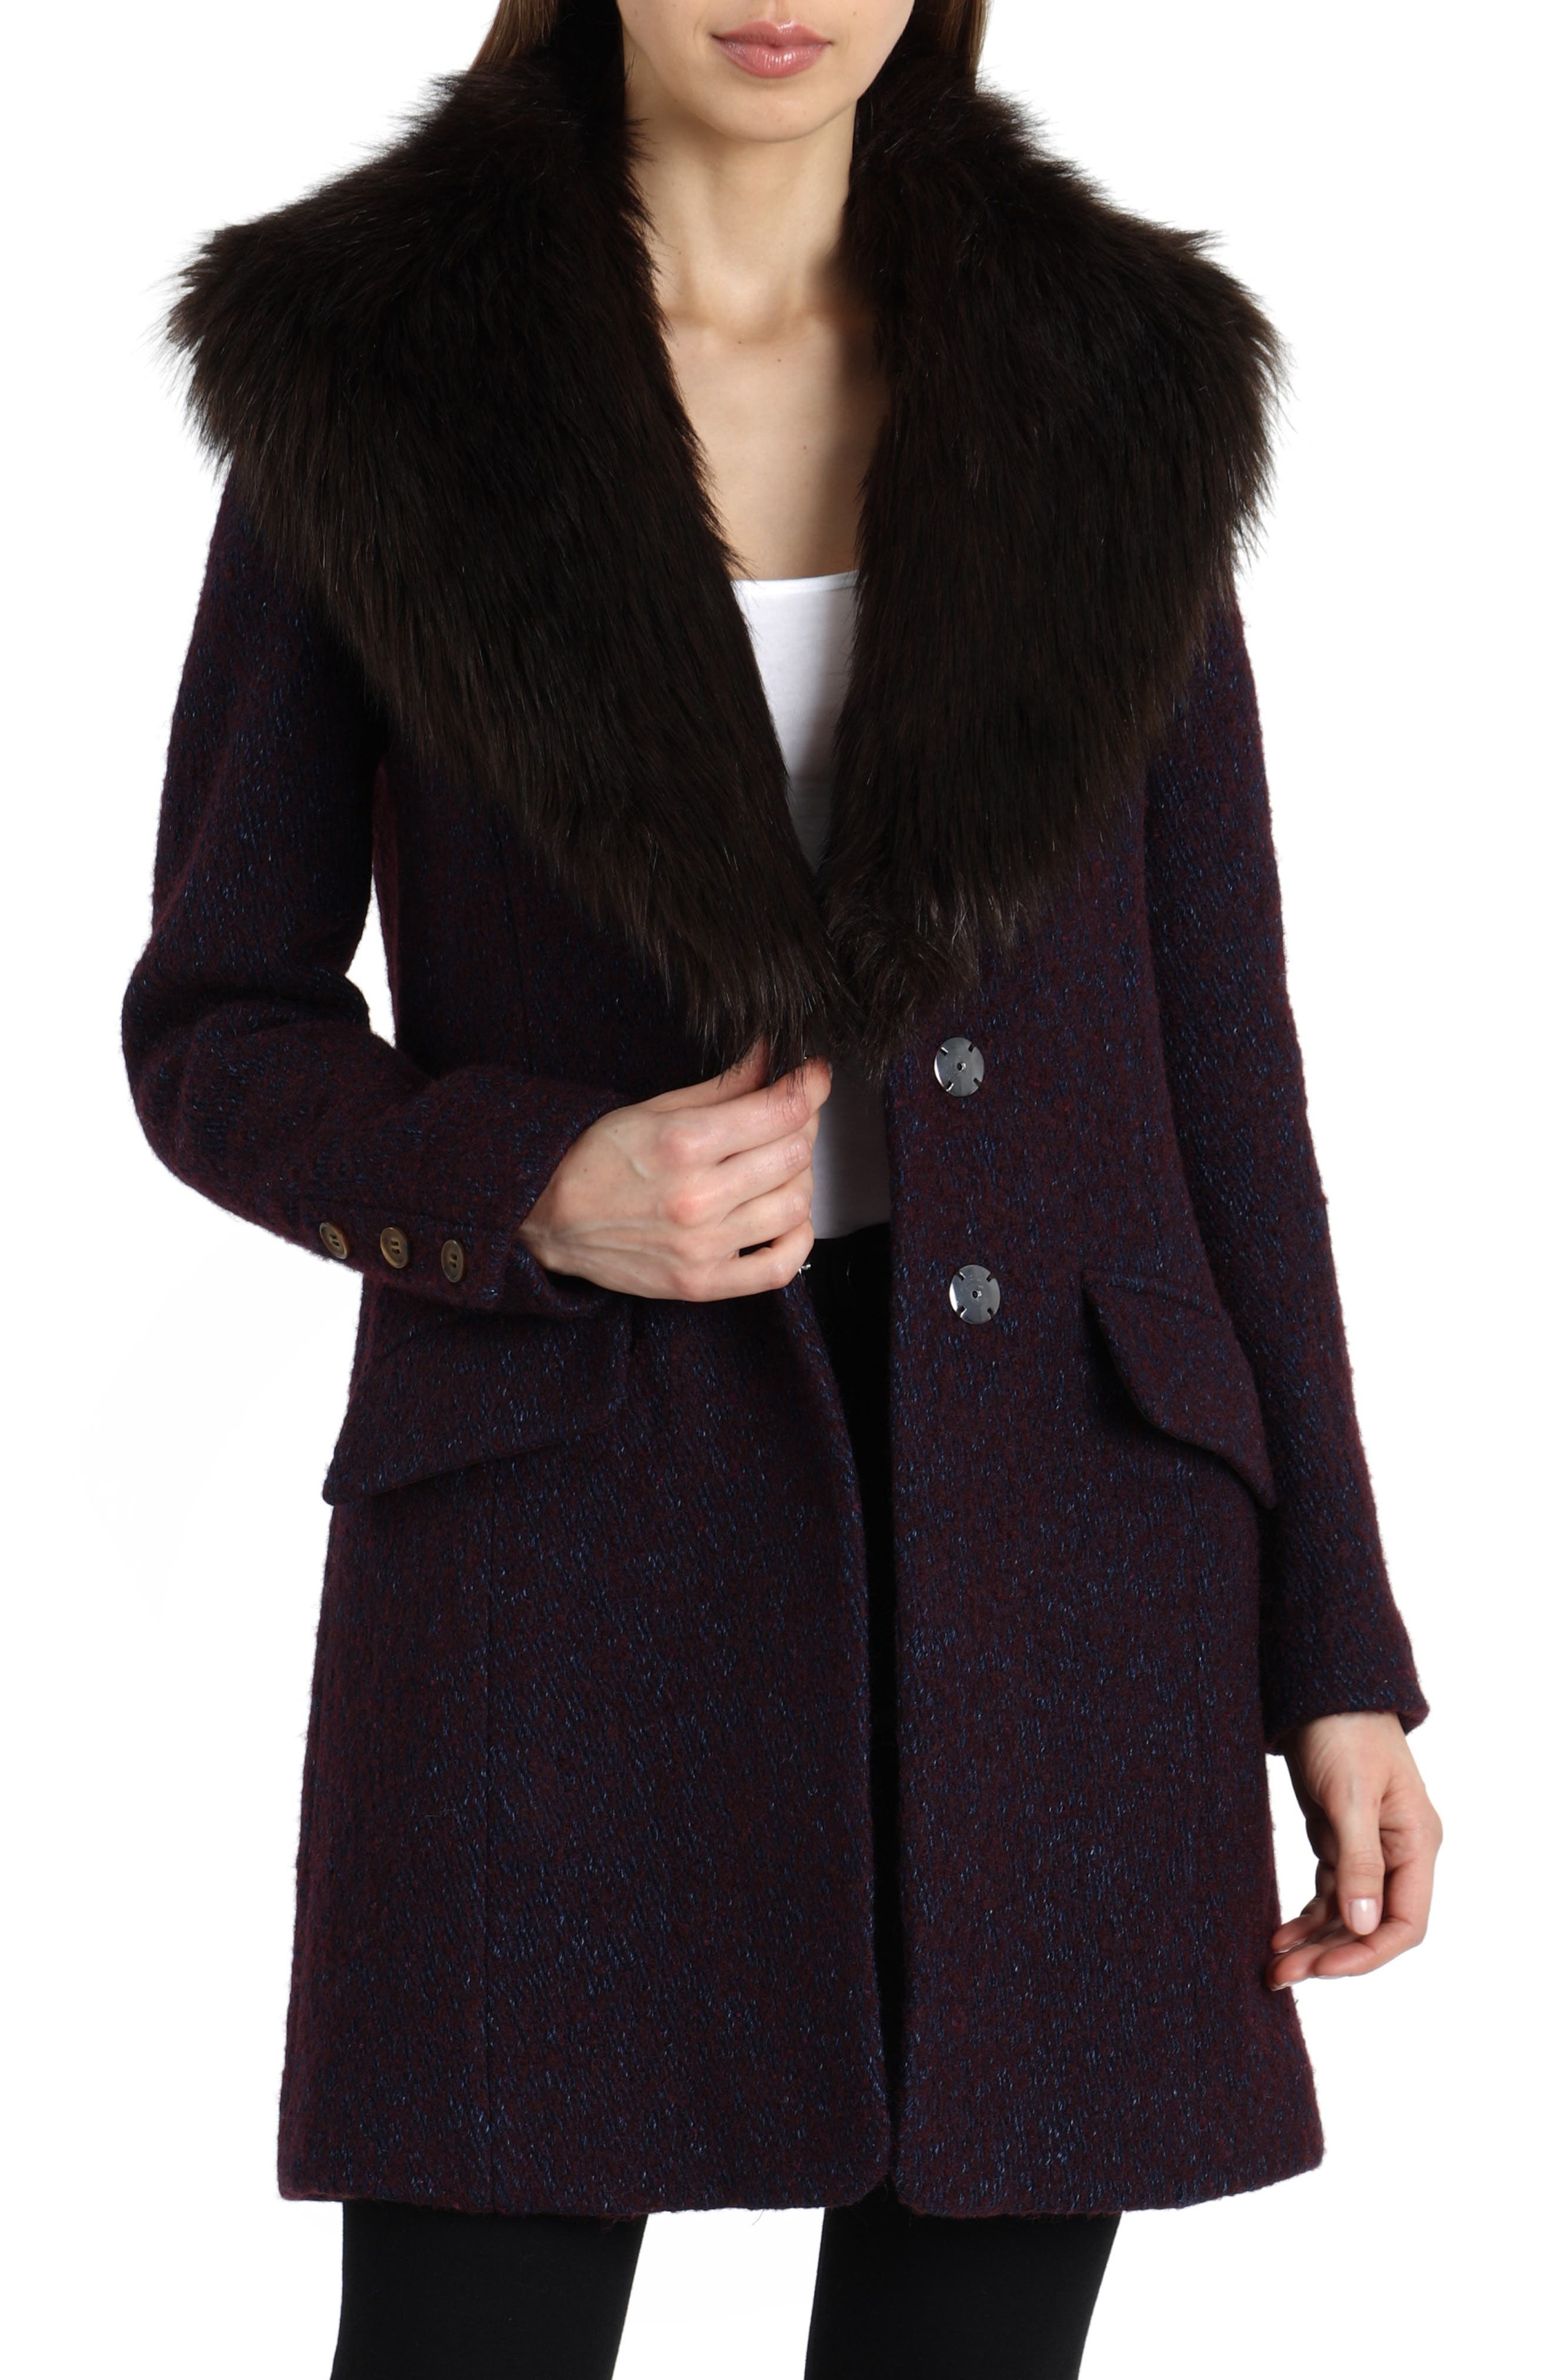 'Holly' Faux Fur Collar Bouclé Coat,                             Main thumbnail 1, color,                             BURGUNDY/ NAVY